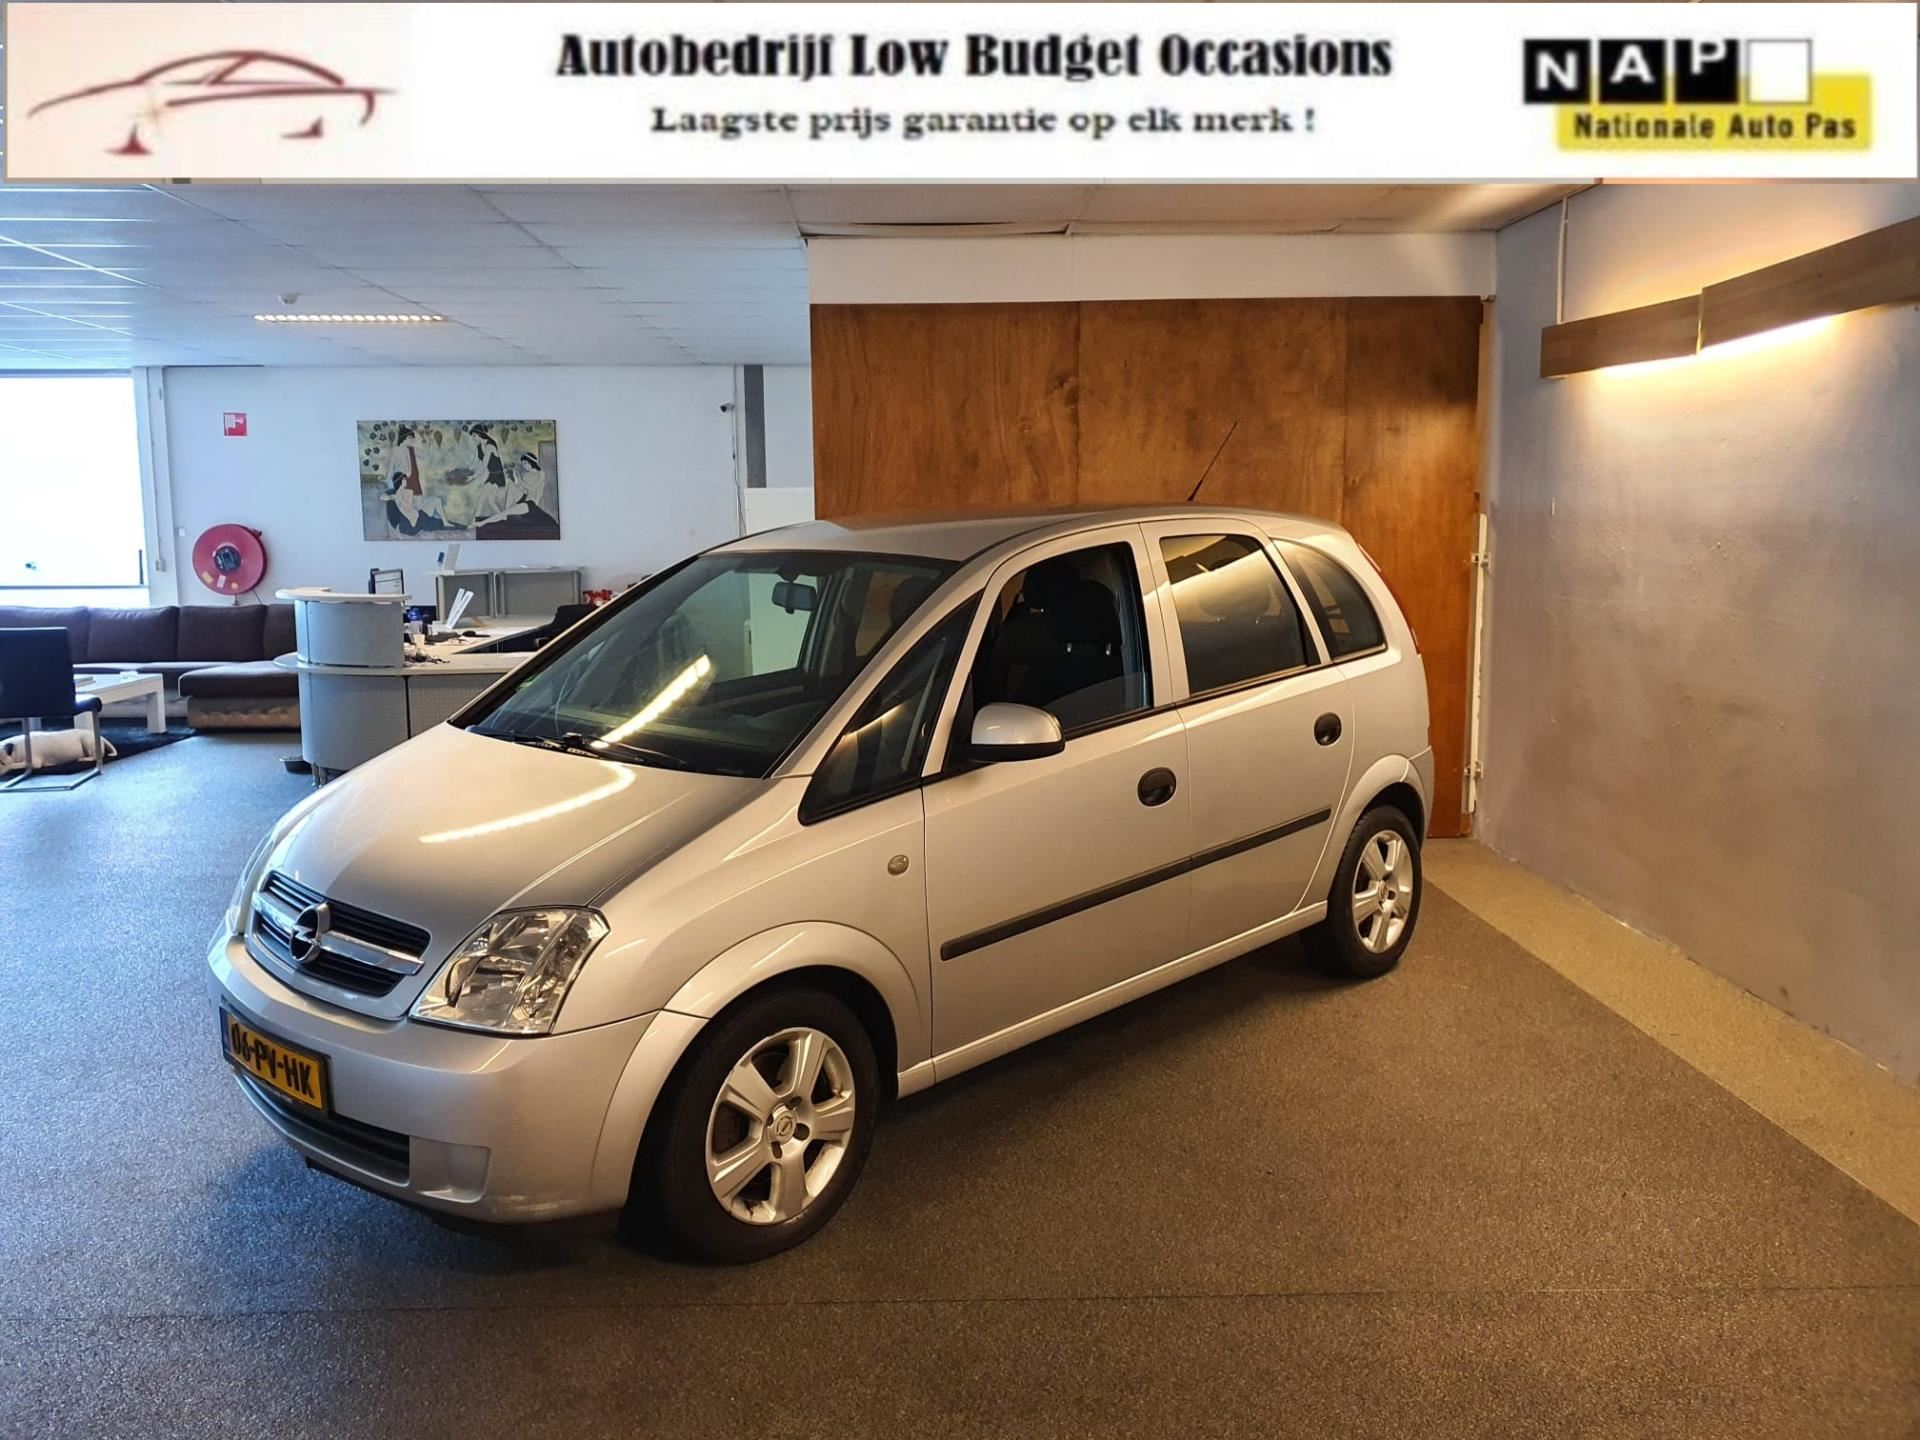 Opel Meriva occasion - Low Budget Occasions